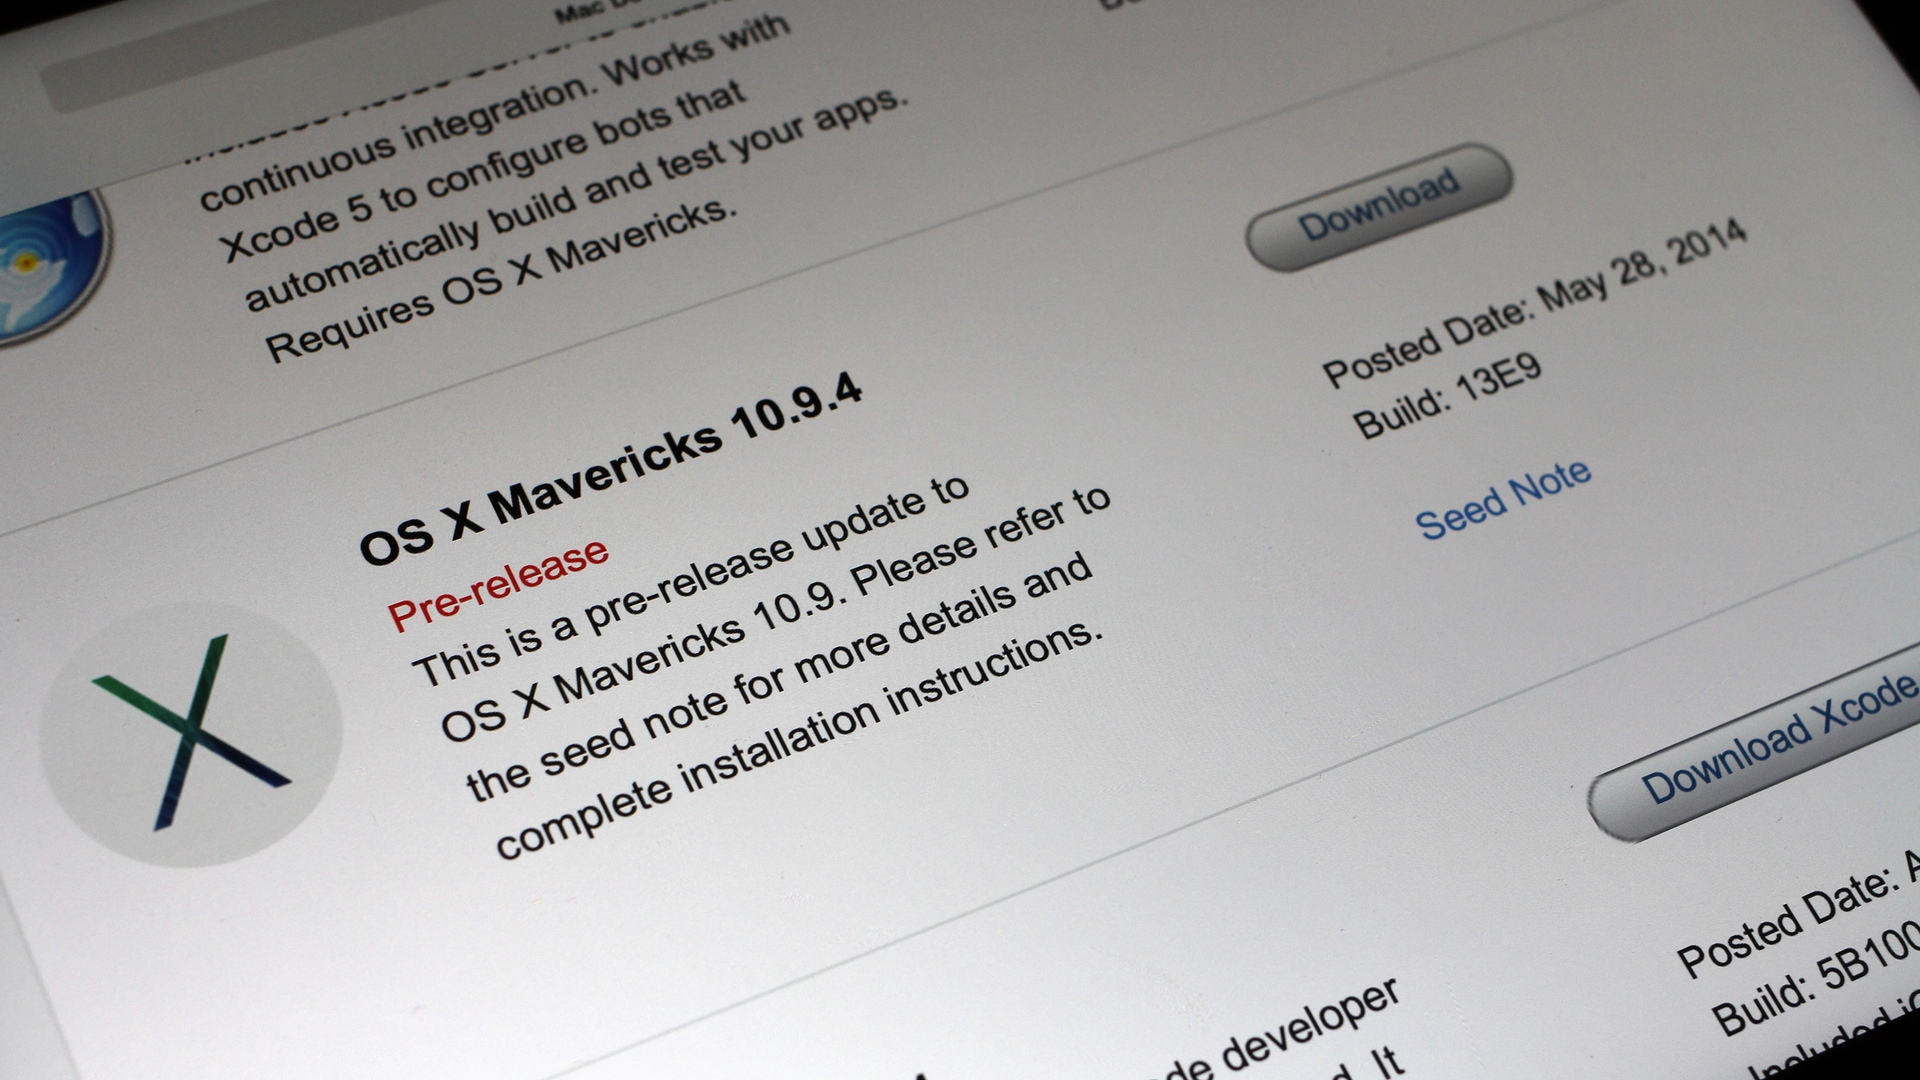 OS X Mavericks 10.9.4 Build 13E9